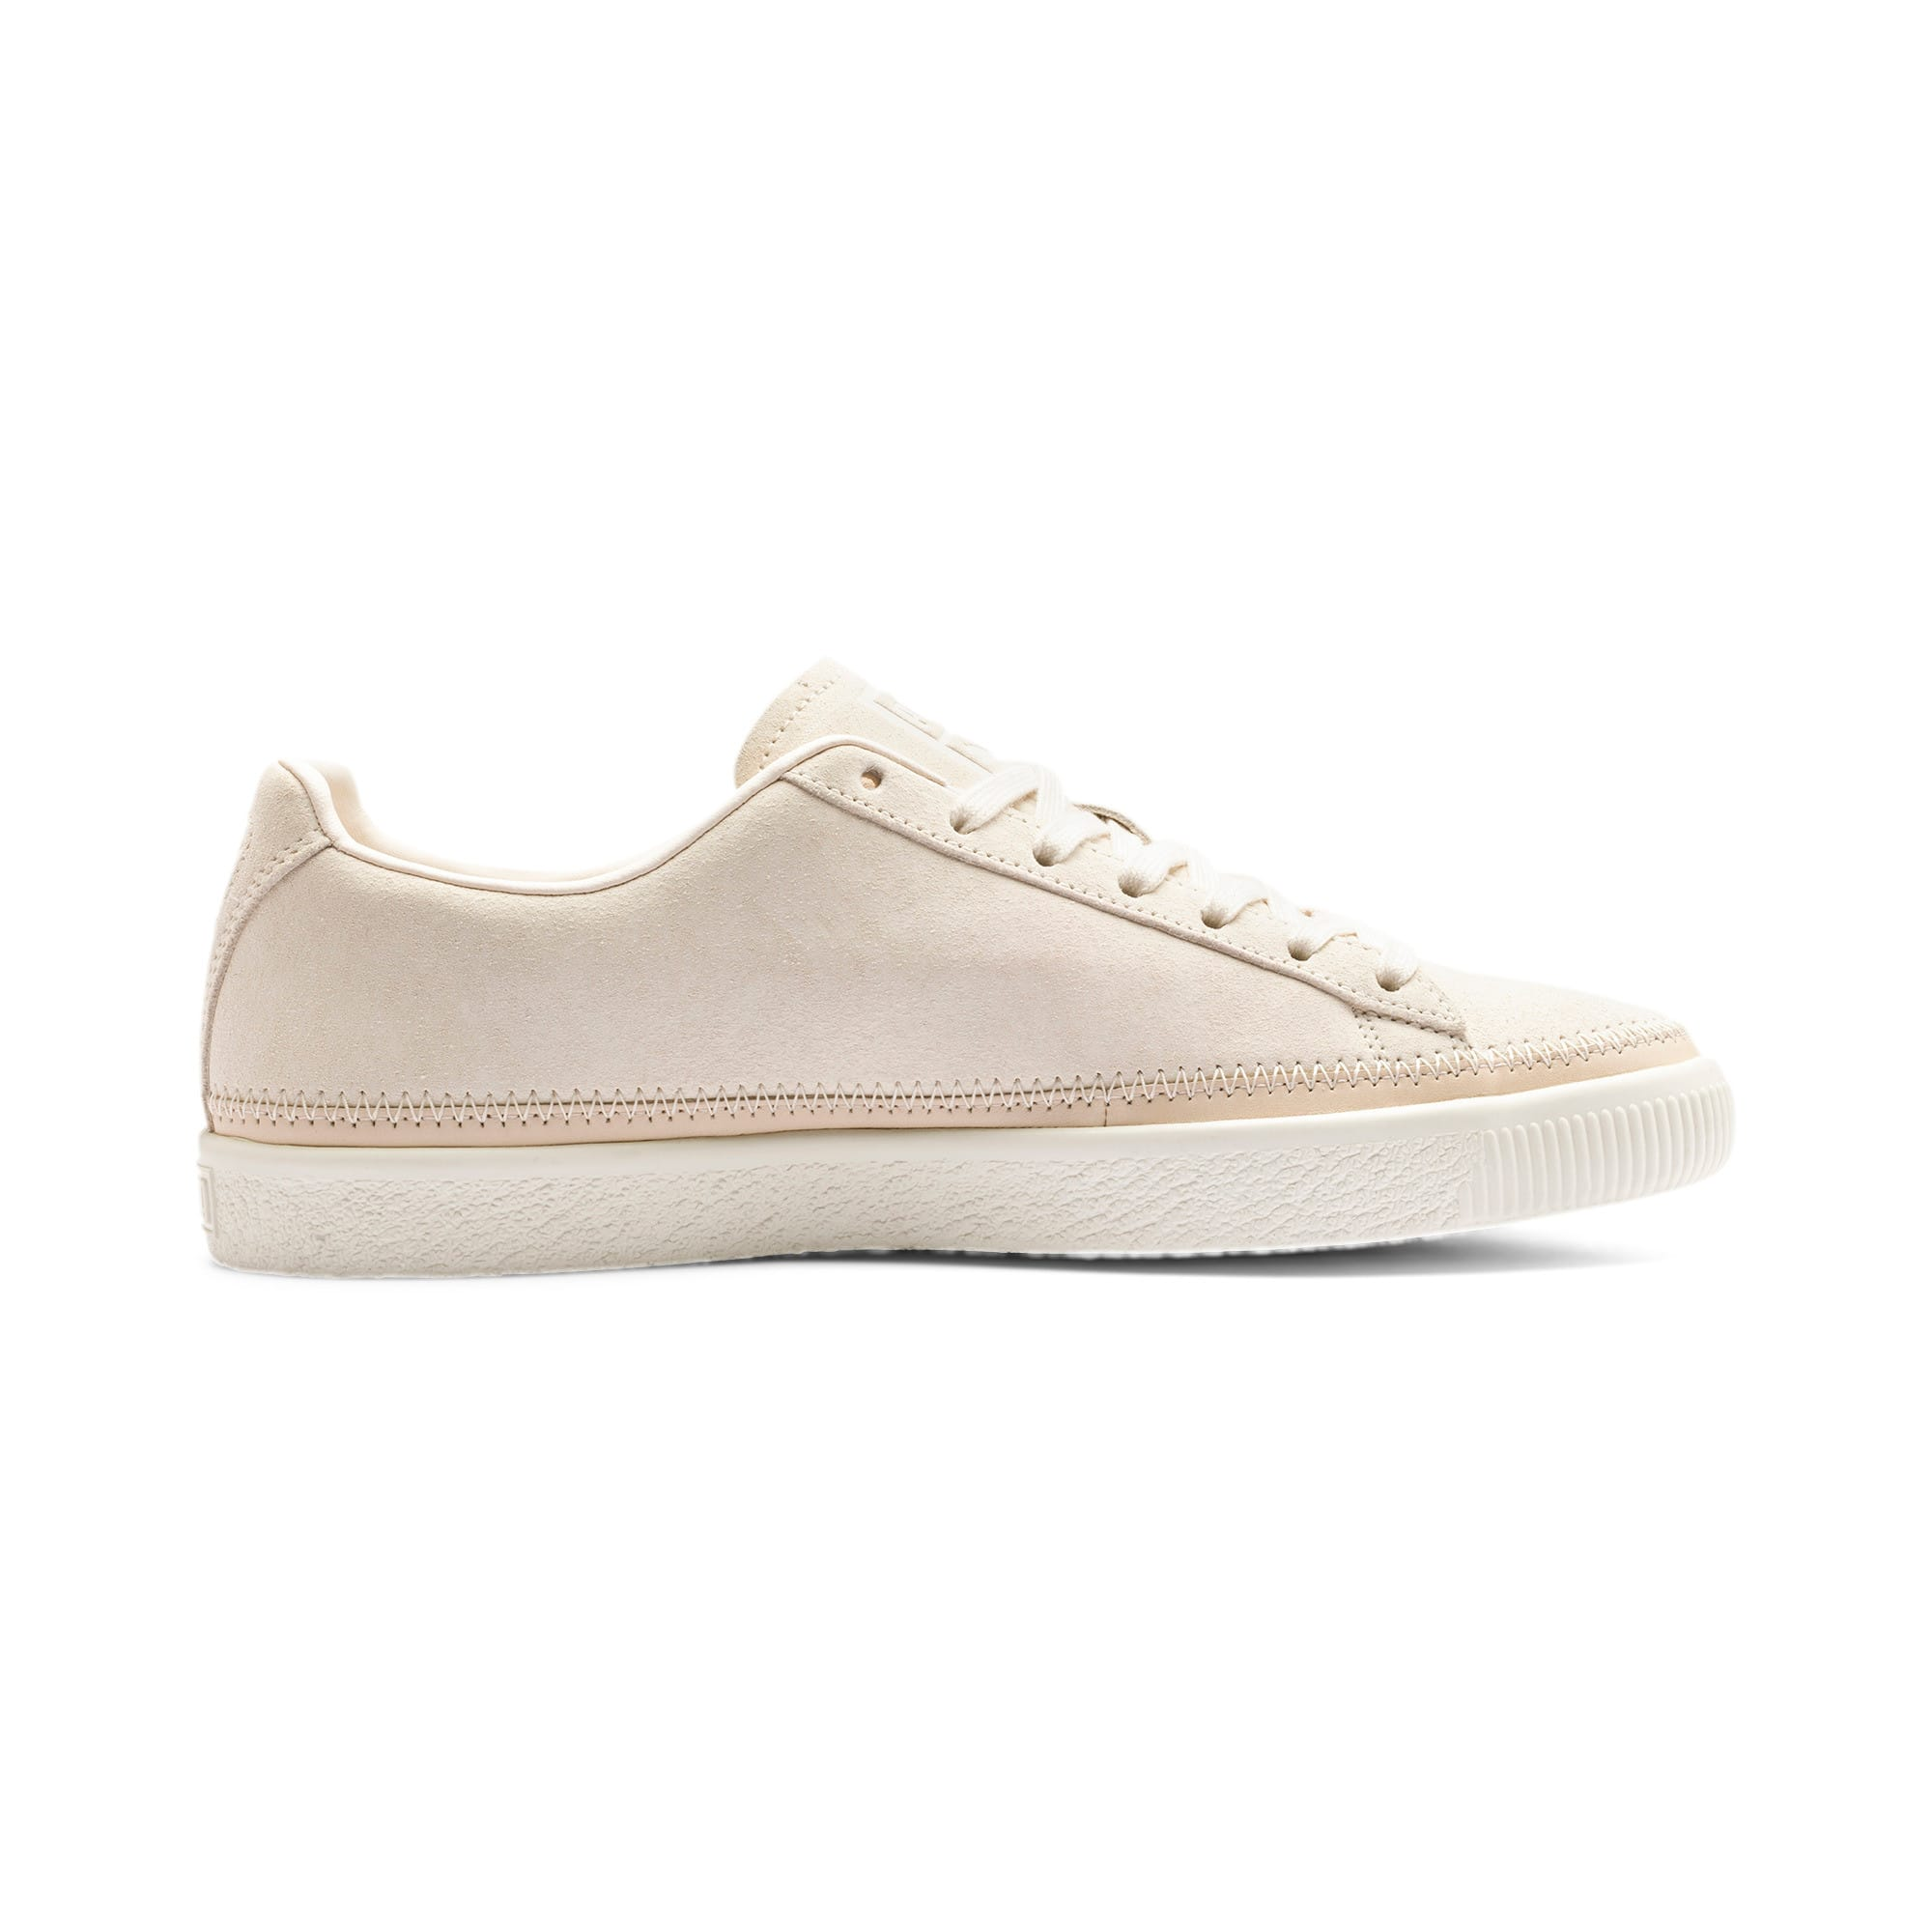 Thumbnail 6 of Suede Trim PRM Sneakers, White Smoke-Whisper White, medium